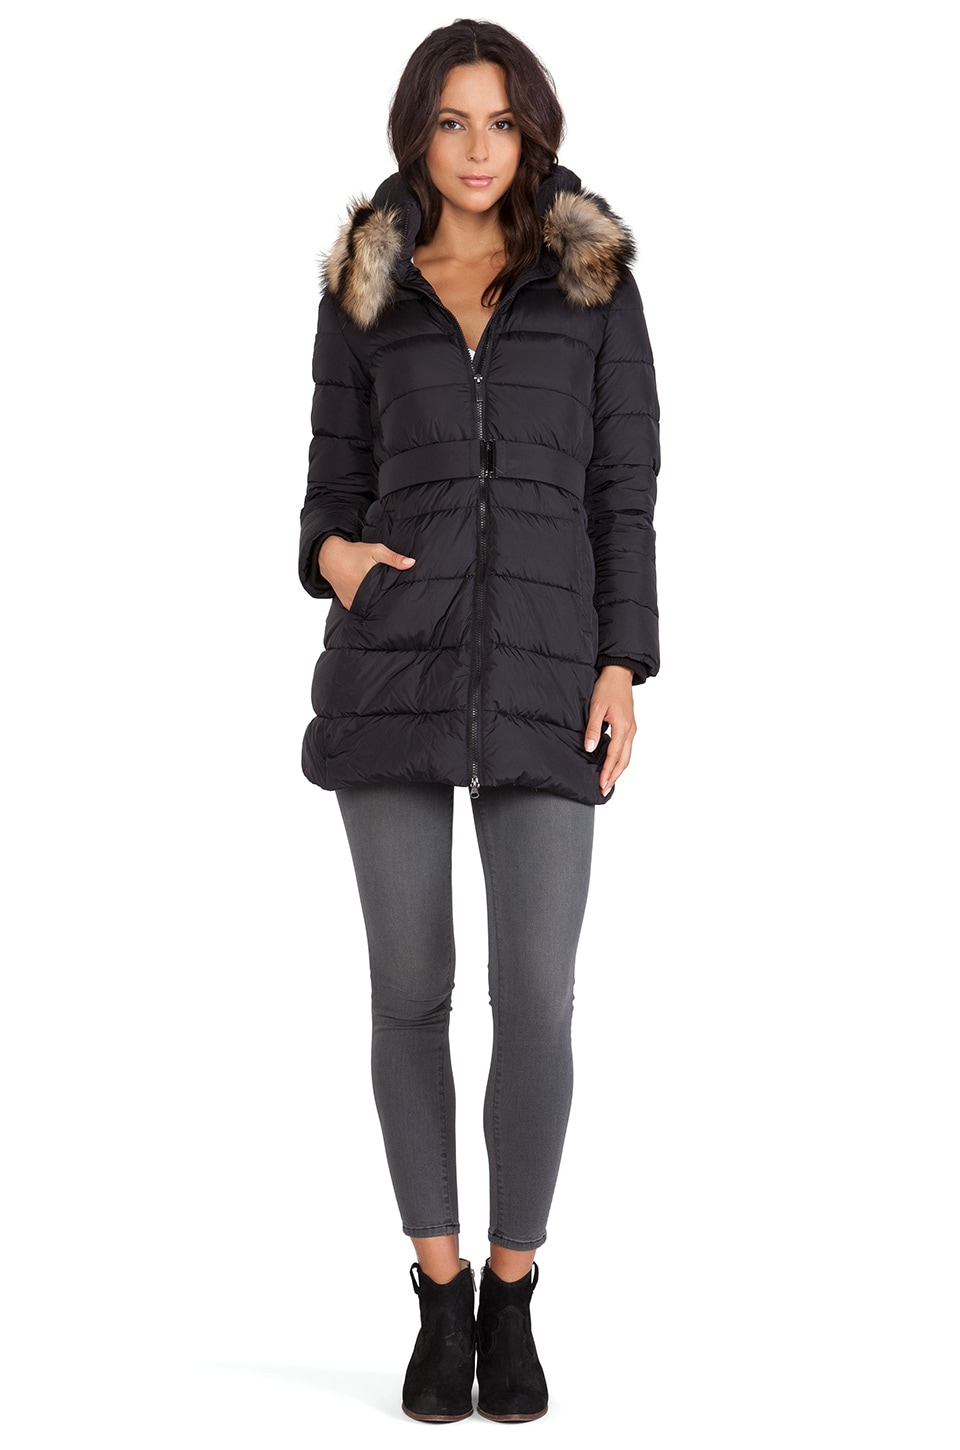 ADD Down Jacket with Fur Collar in Black | REVOLVE